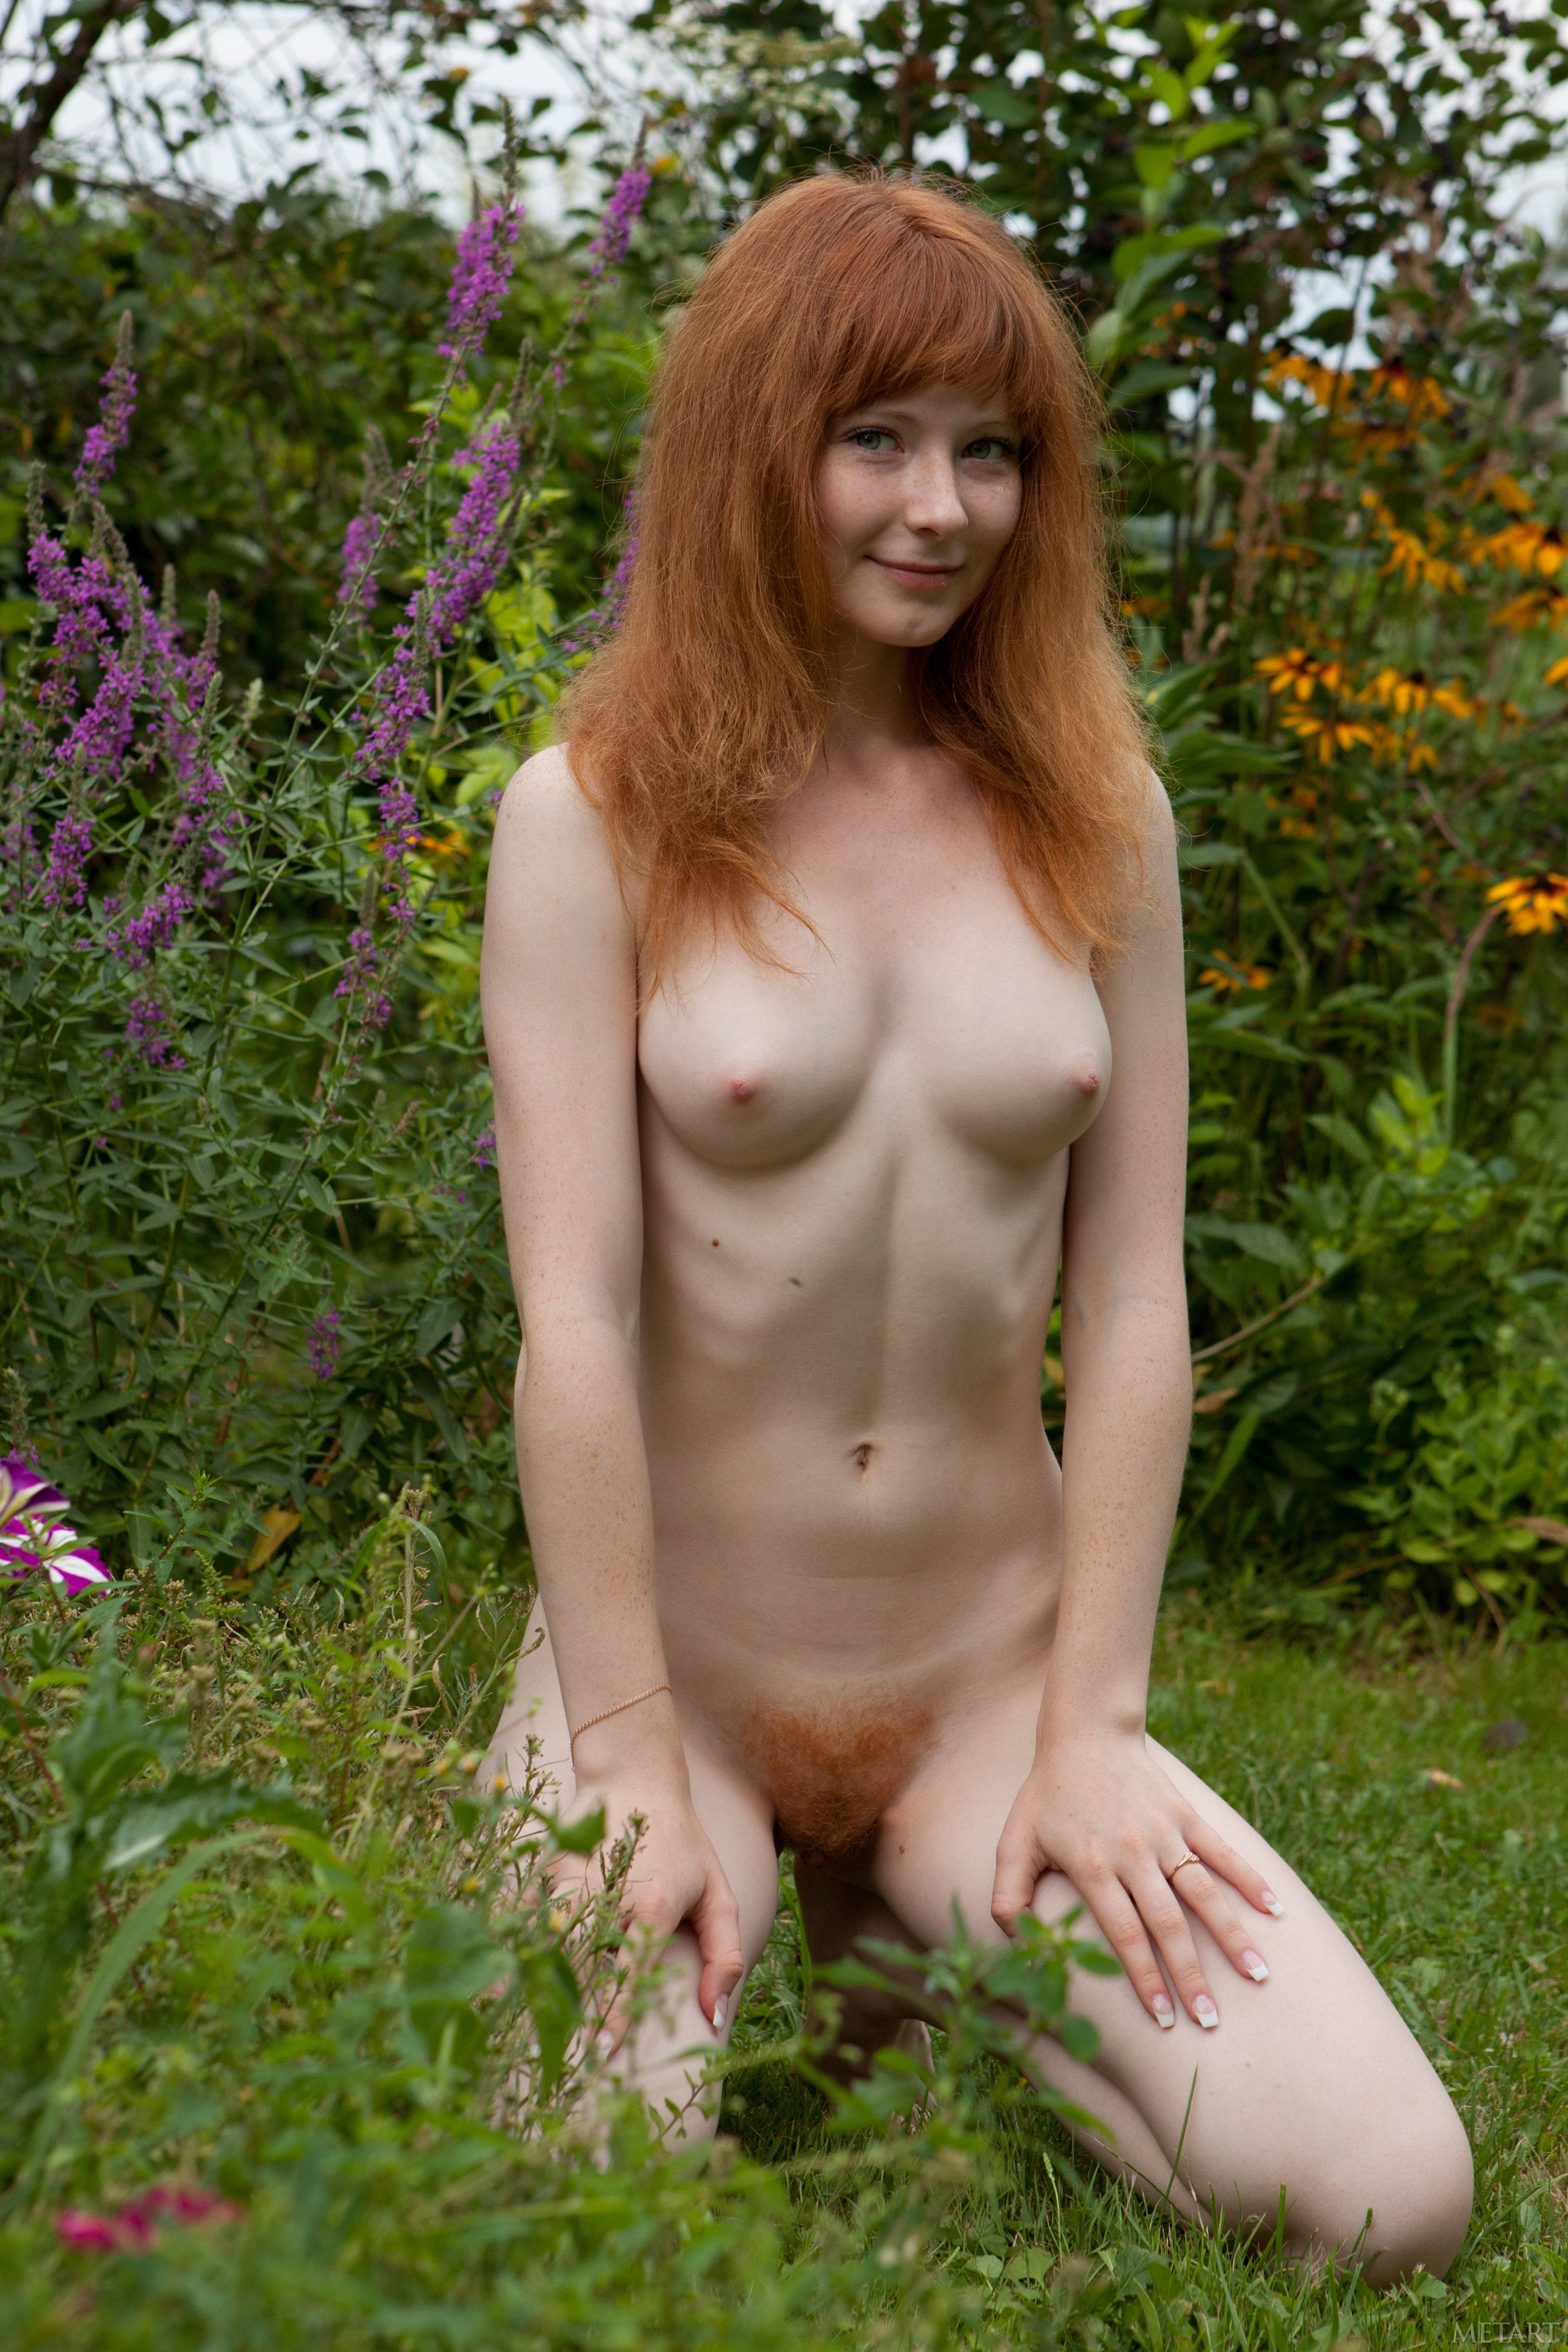 ellie roe new discovery milf fuck #amateur #amateur #babe #babe #eyecontact #eyecontact #flashing #flashing #ginger #hot #hot #jeans #jeans #pale #pale #petite #petite #redhead #redhead #sexy #sexy #shorts #shorts #smalltits #smalltits #smile #titsout #titsout